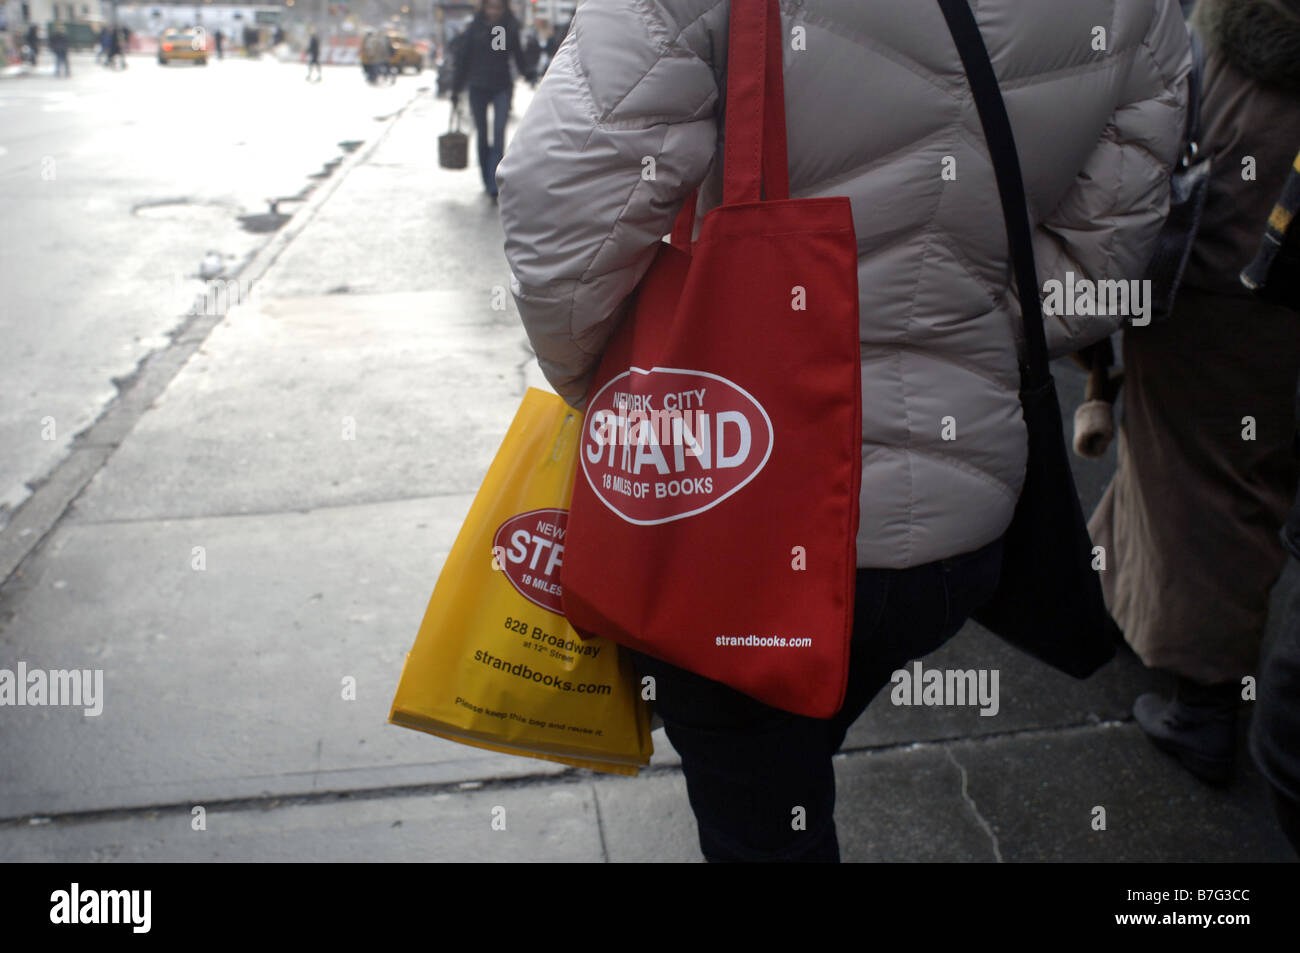 A woman walks down Broadway in the New York neighborhood of the East Village carrying a Strand bookstore tote - Stock Image